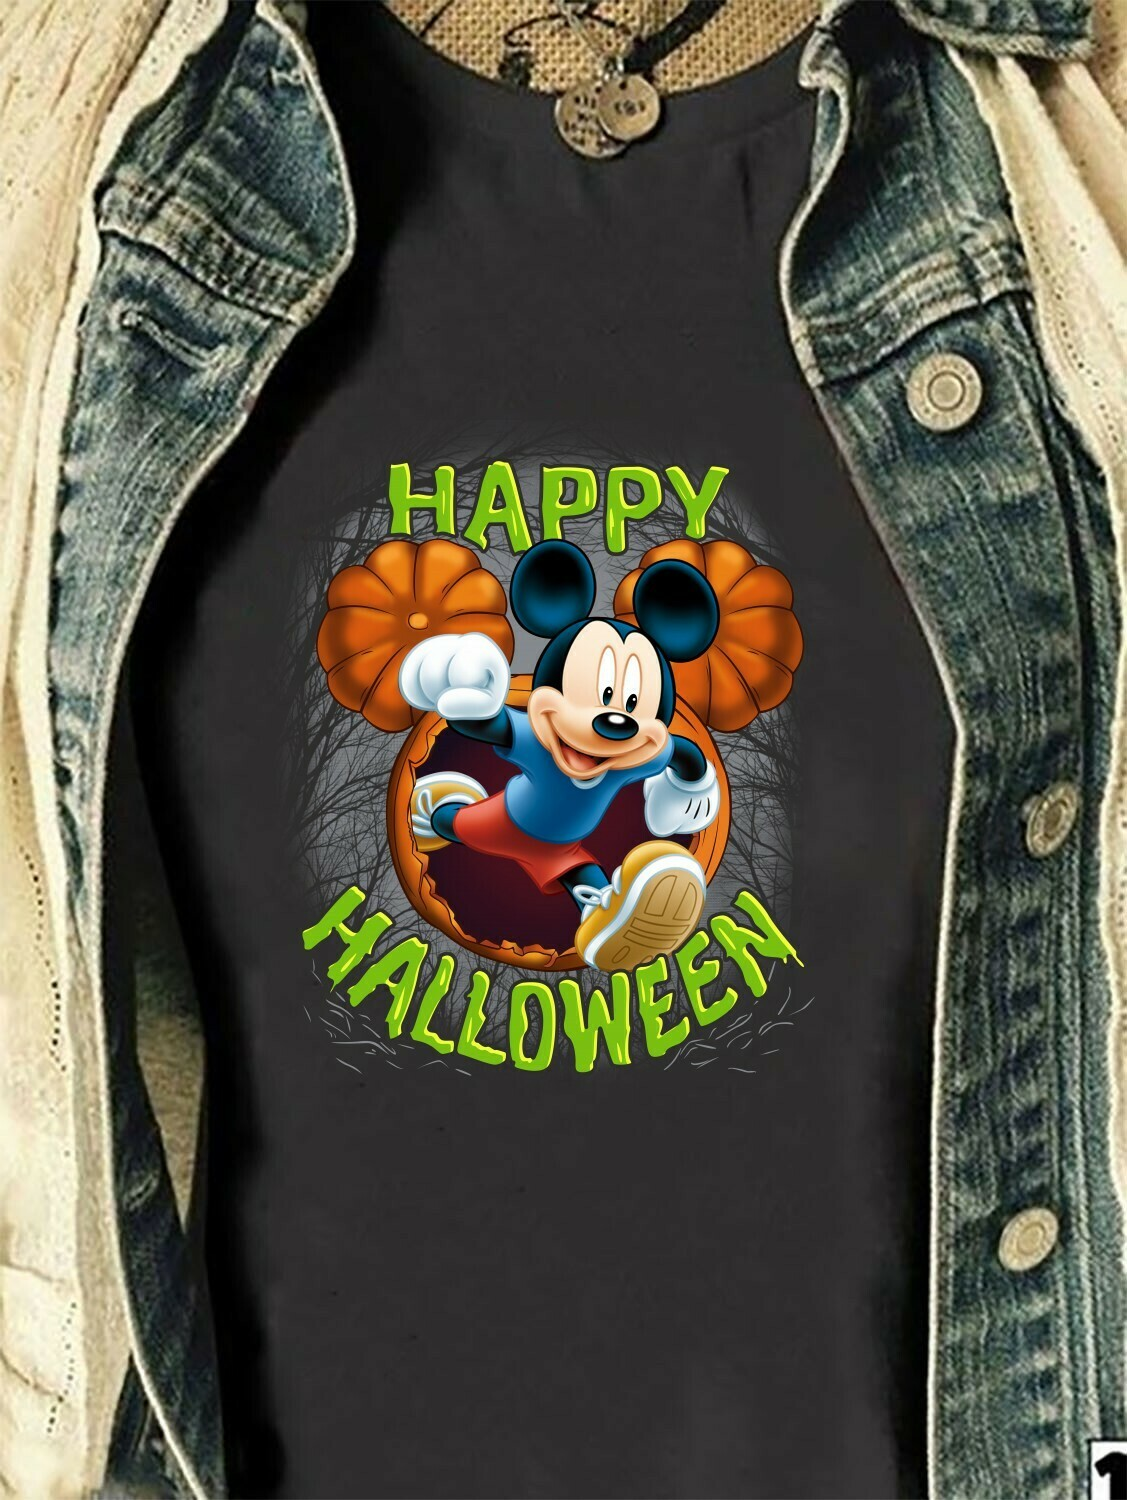 Disney Mickey Mouse Happy Halloween Pumpkin Mickey Head I'm going to Walt Disney Vacation Family Let's Go to Disney World T-Shirt Long Sleeve Sweatshirt Hoodie Jolly Family Gifts